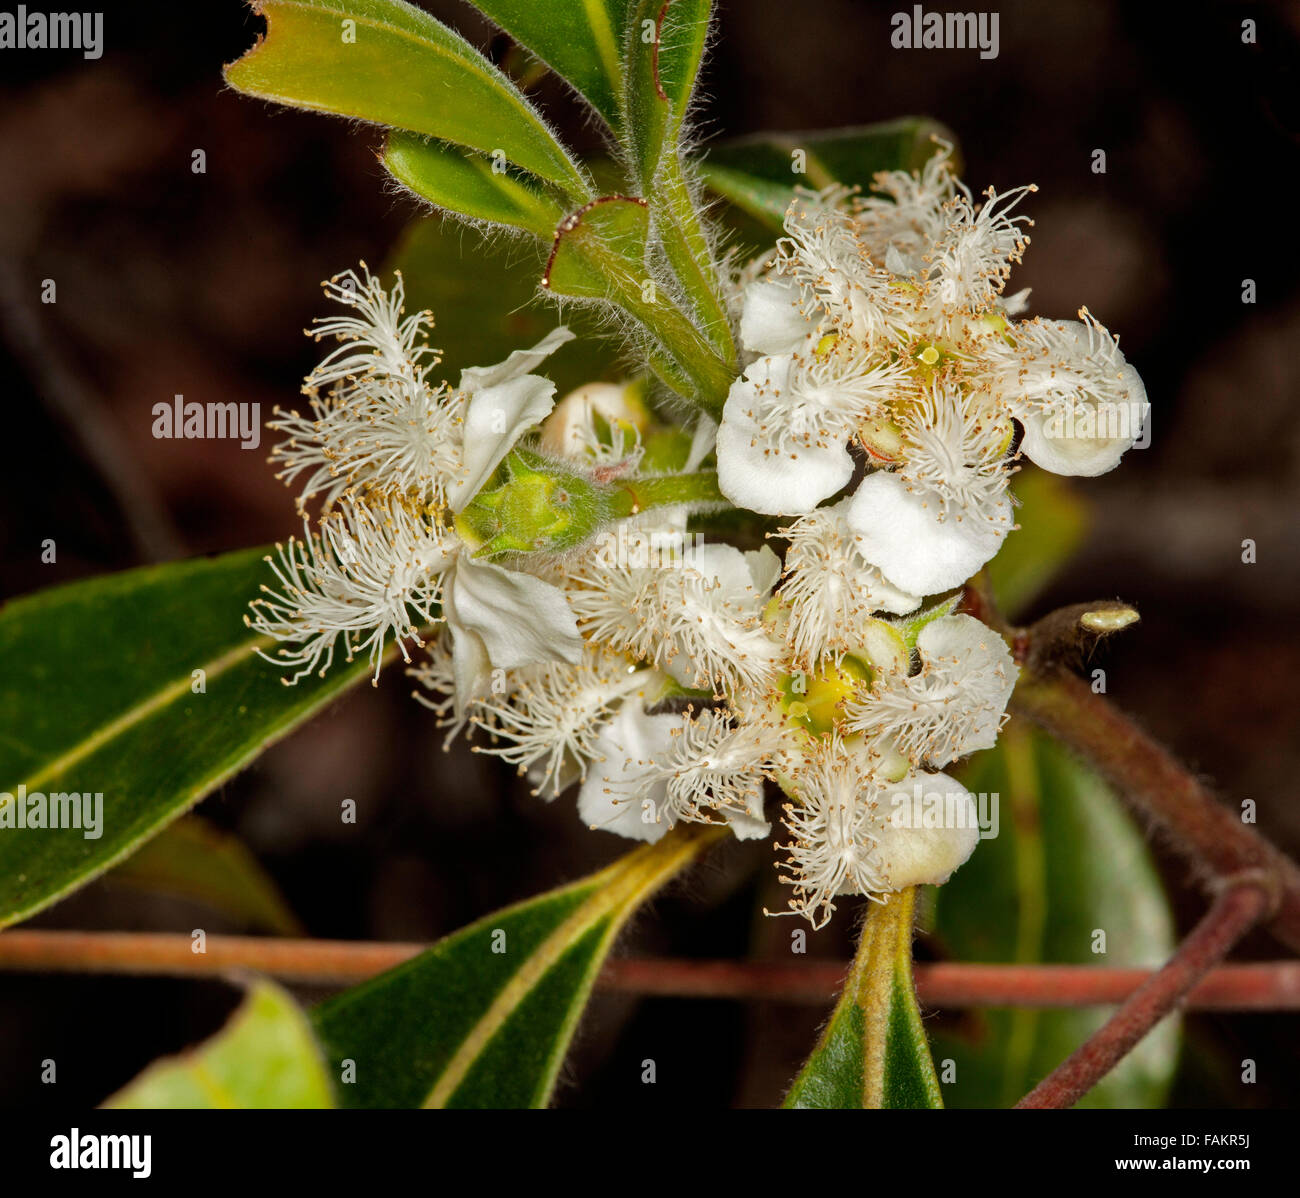 Cluster Of White Flowers Of Australian Native Tree